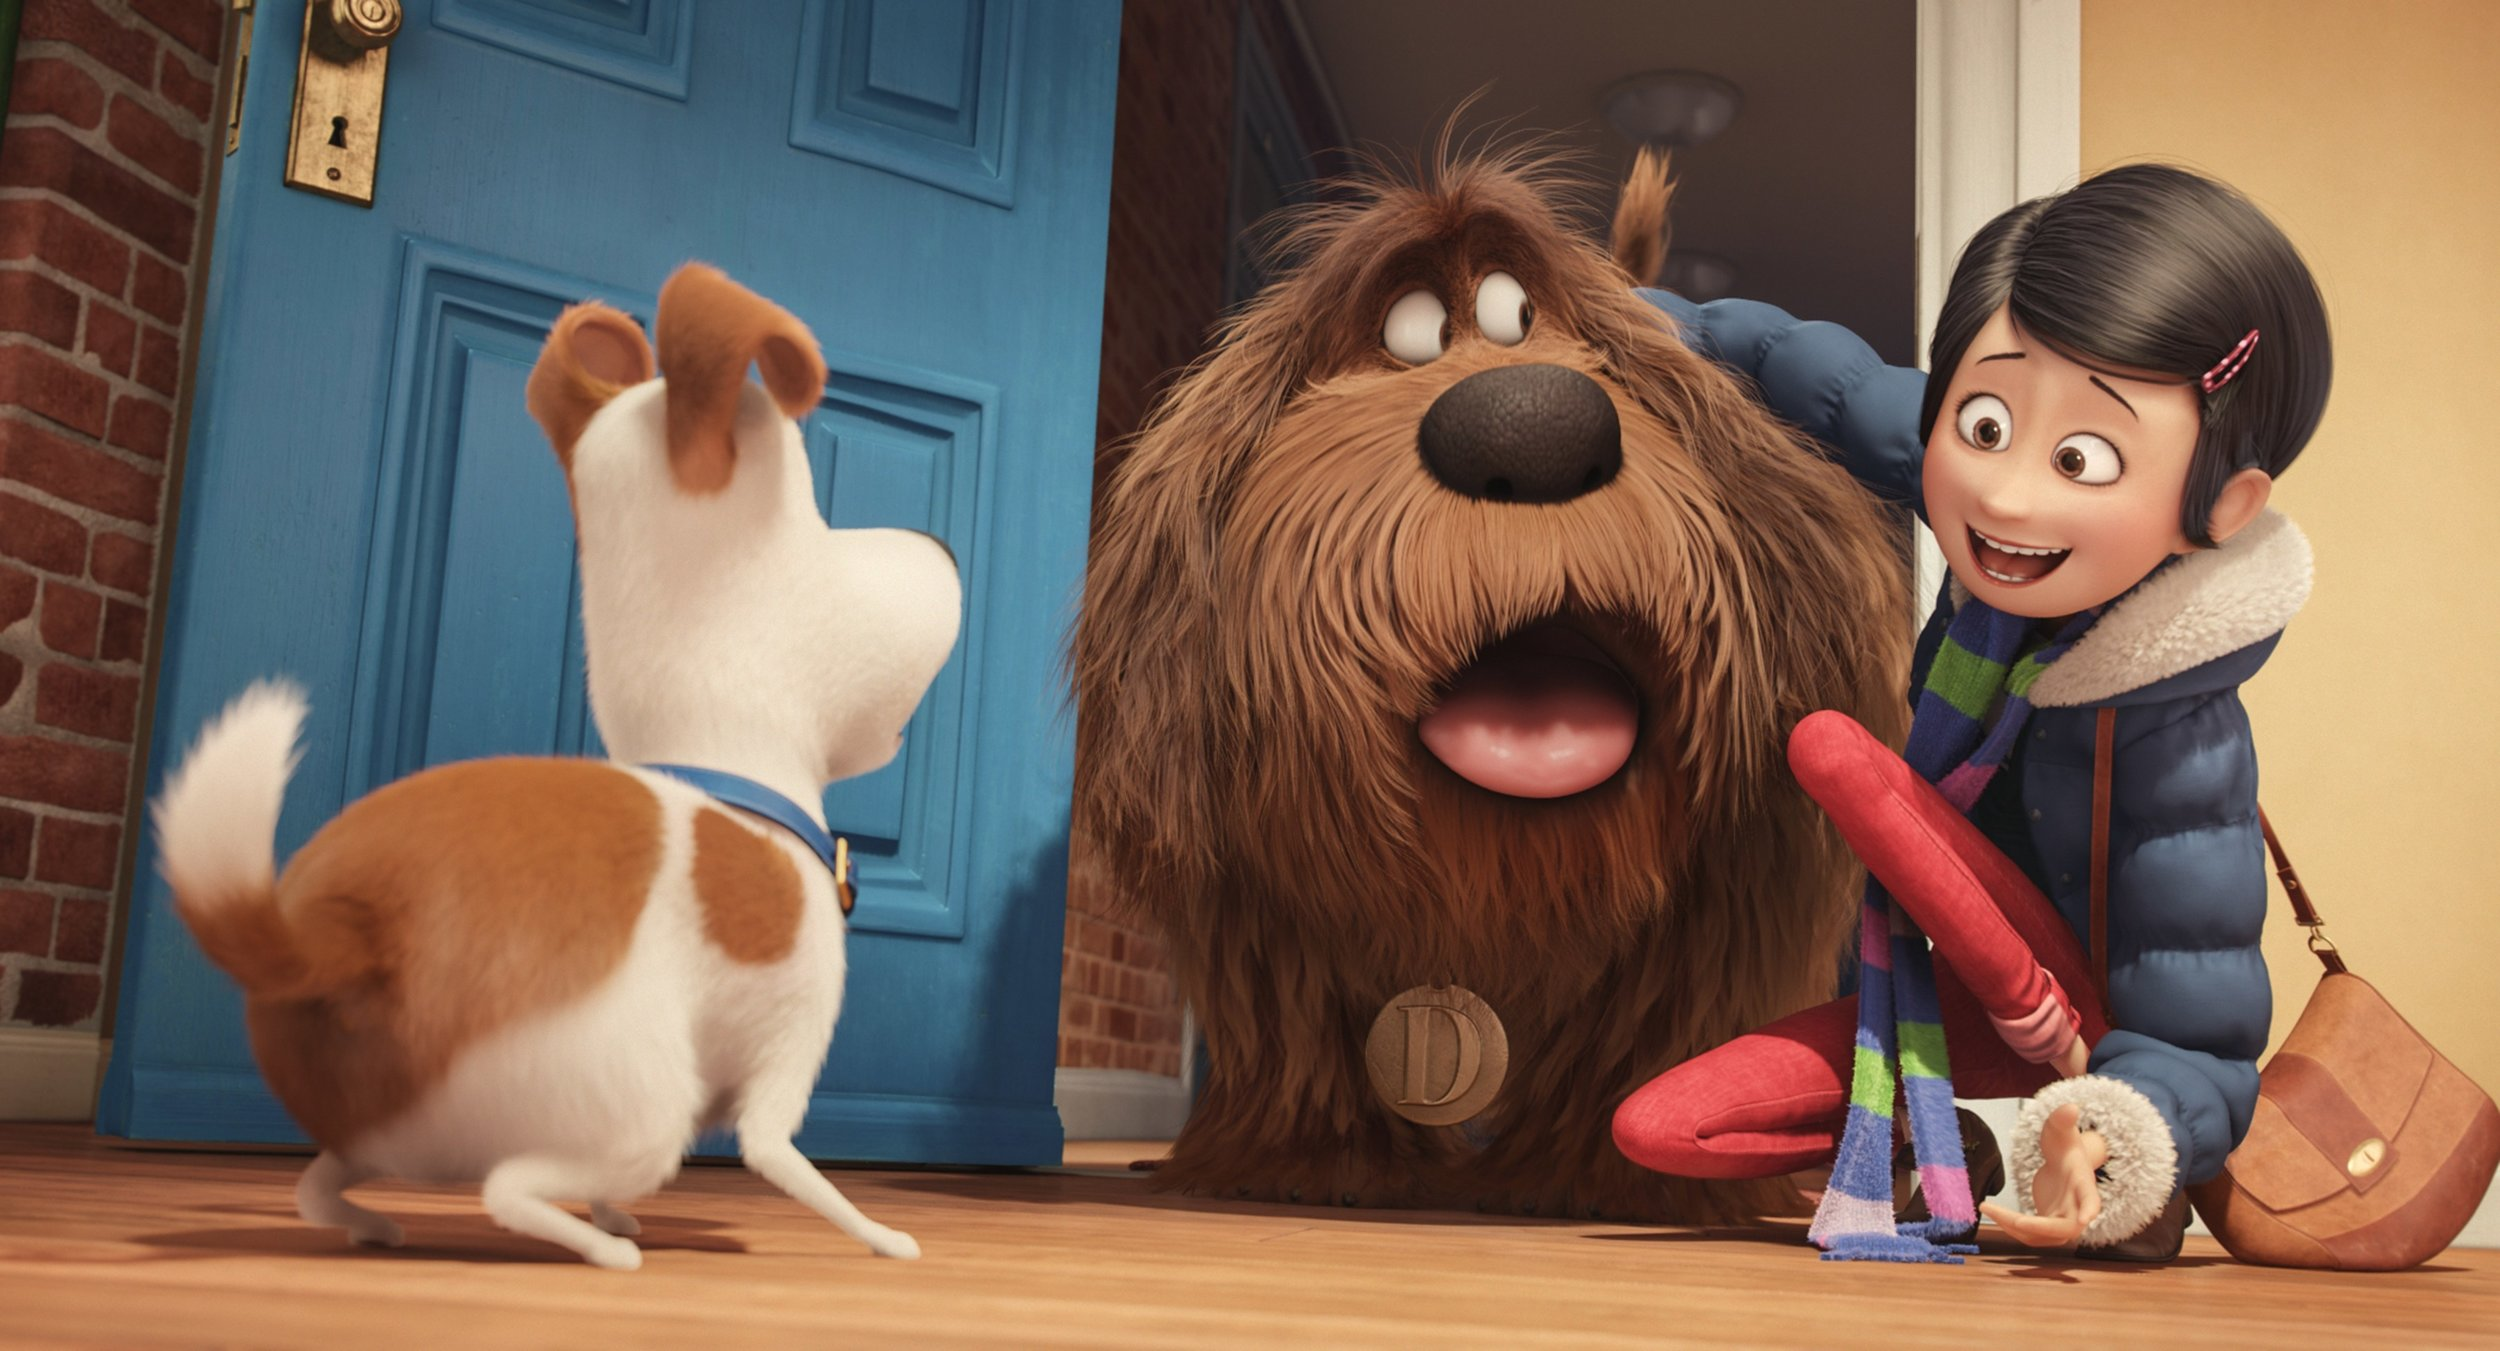 The Secret Life of Pets features the voices of Kevin Hart, Ellie Kemper, Louis C.K., and others.